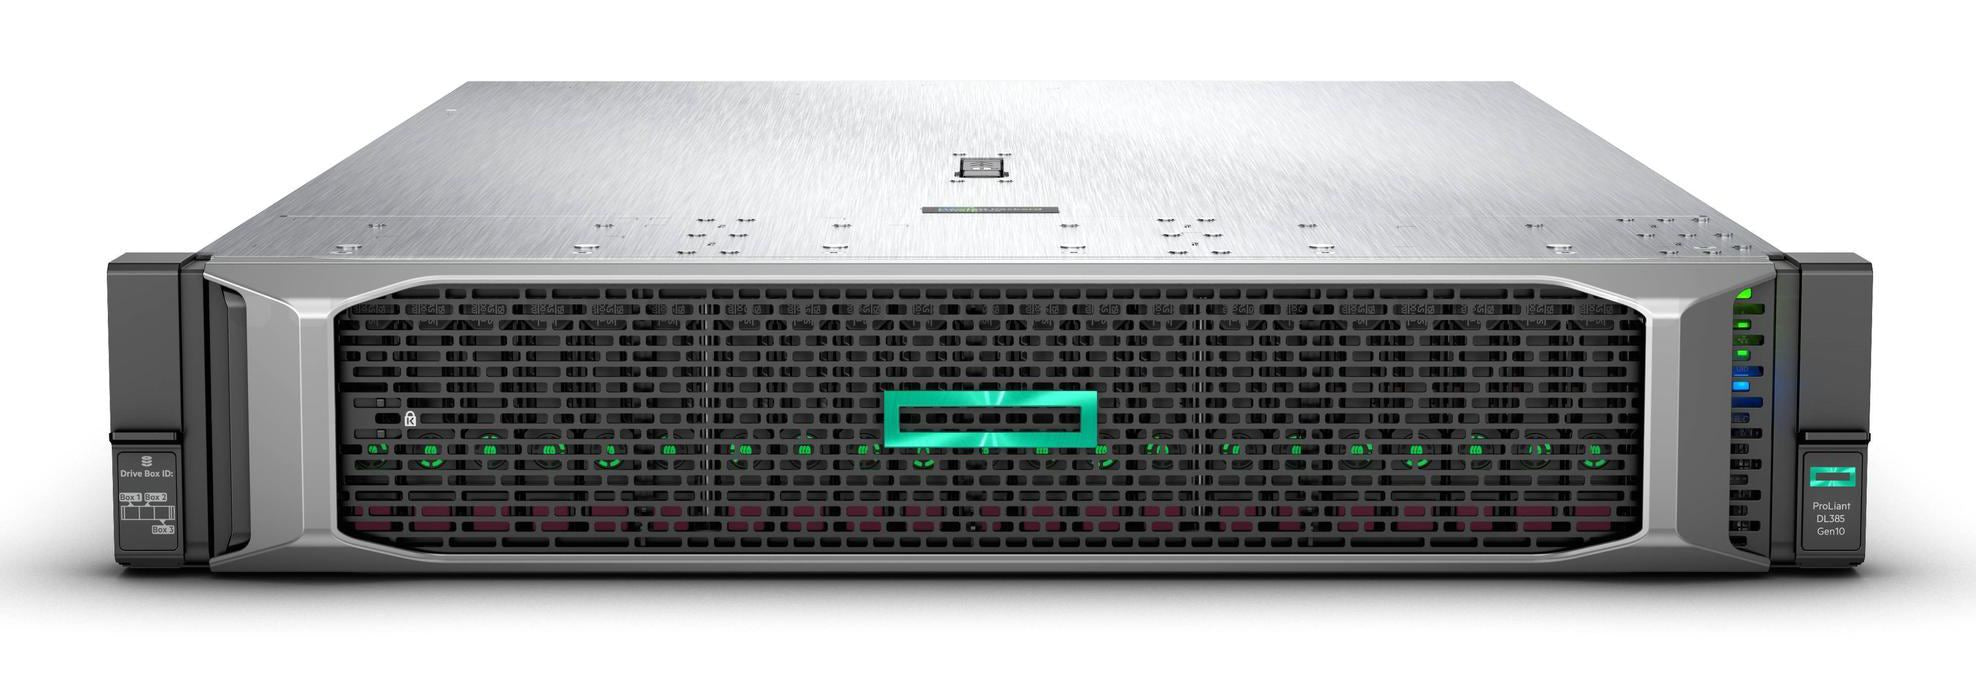 HPE ProLiant DL385 Gen10 CTO Server